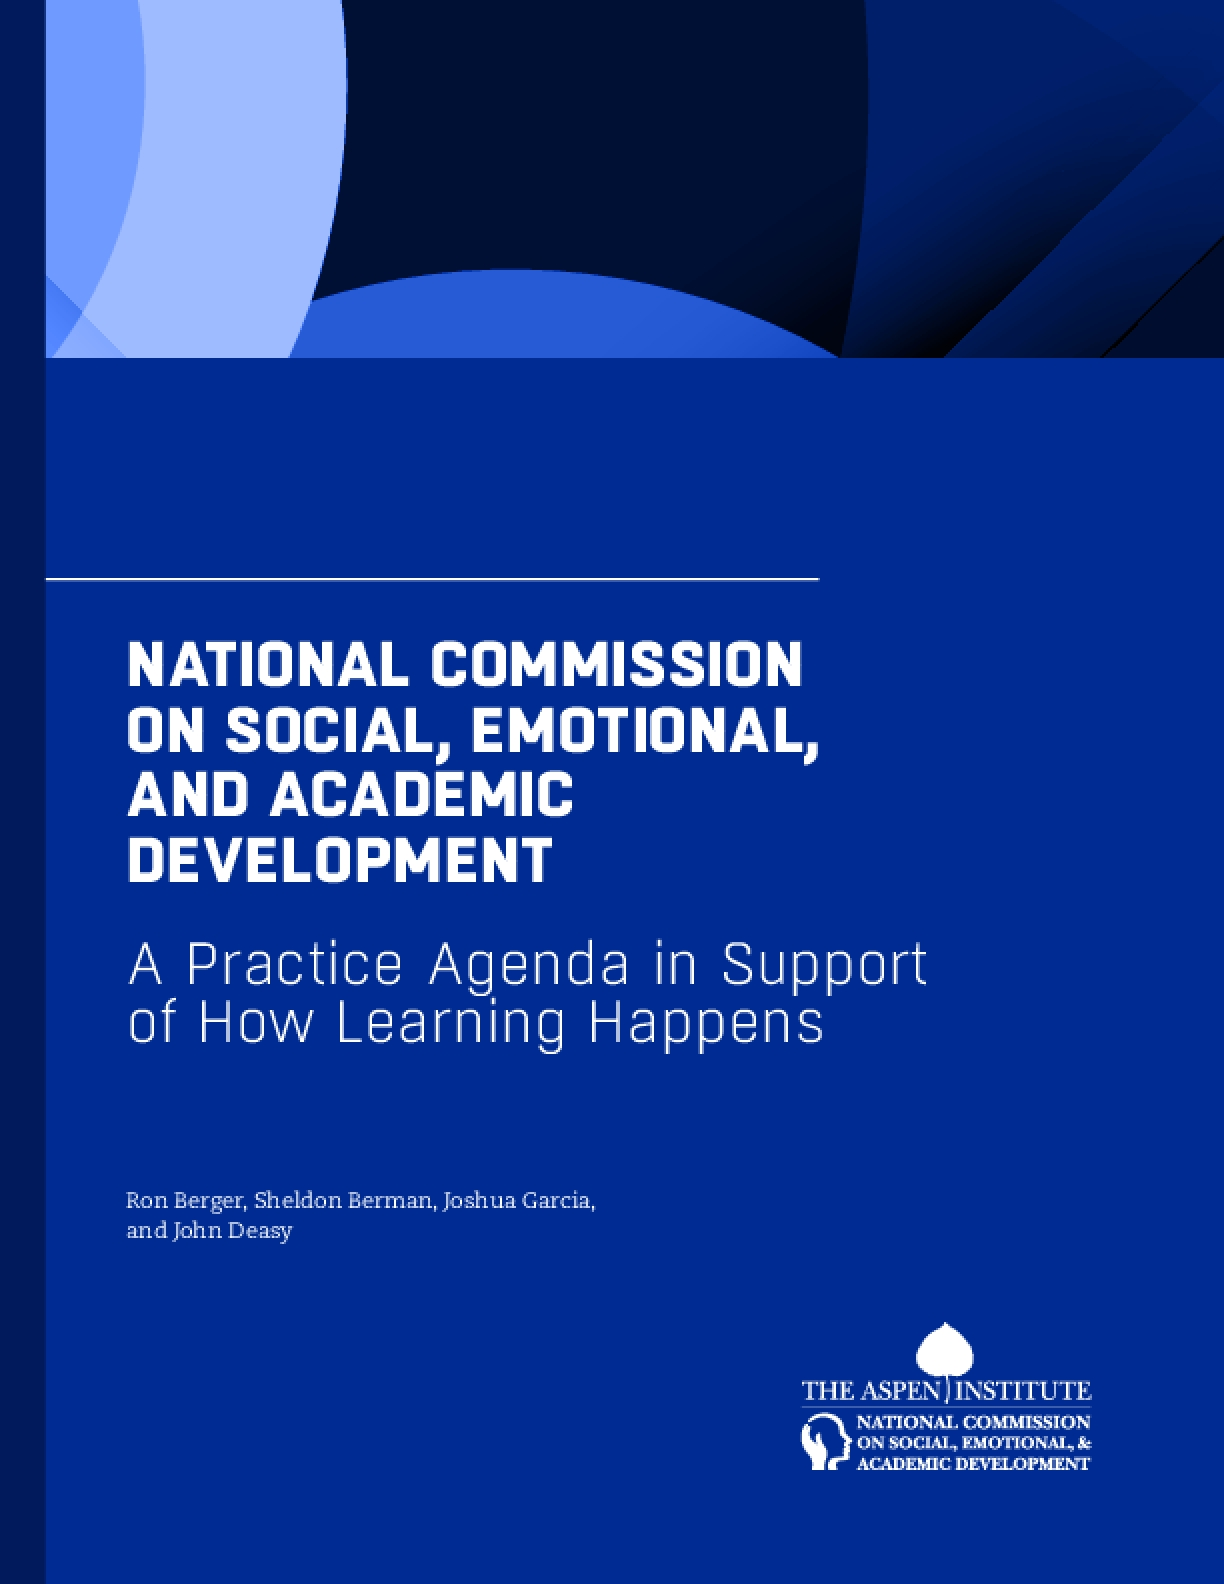 National Commission on Social, Emotional, and Academic Development: A Practice Agenda in Support of How Learning Happens